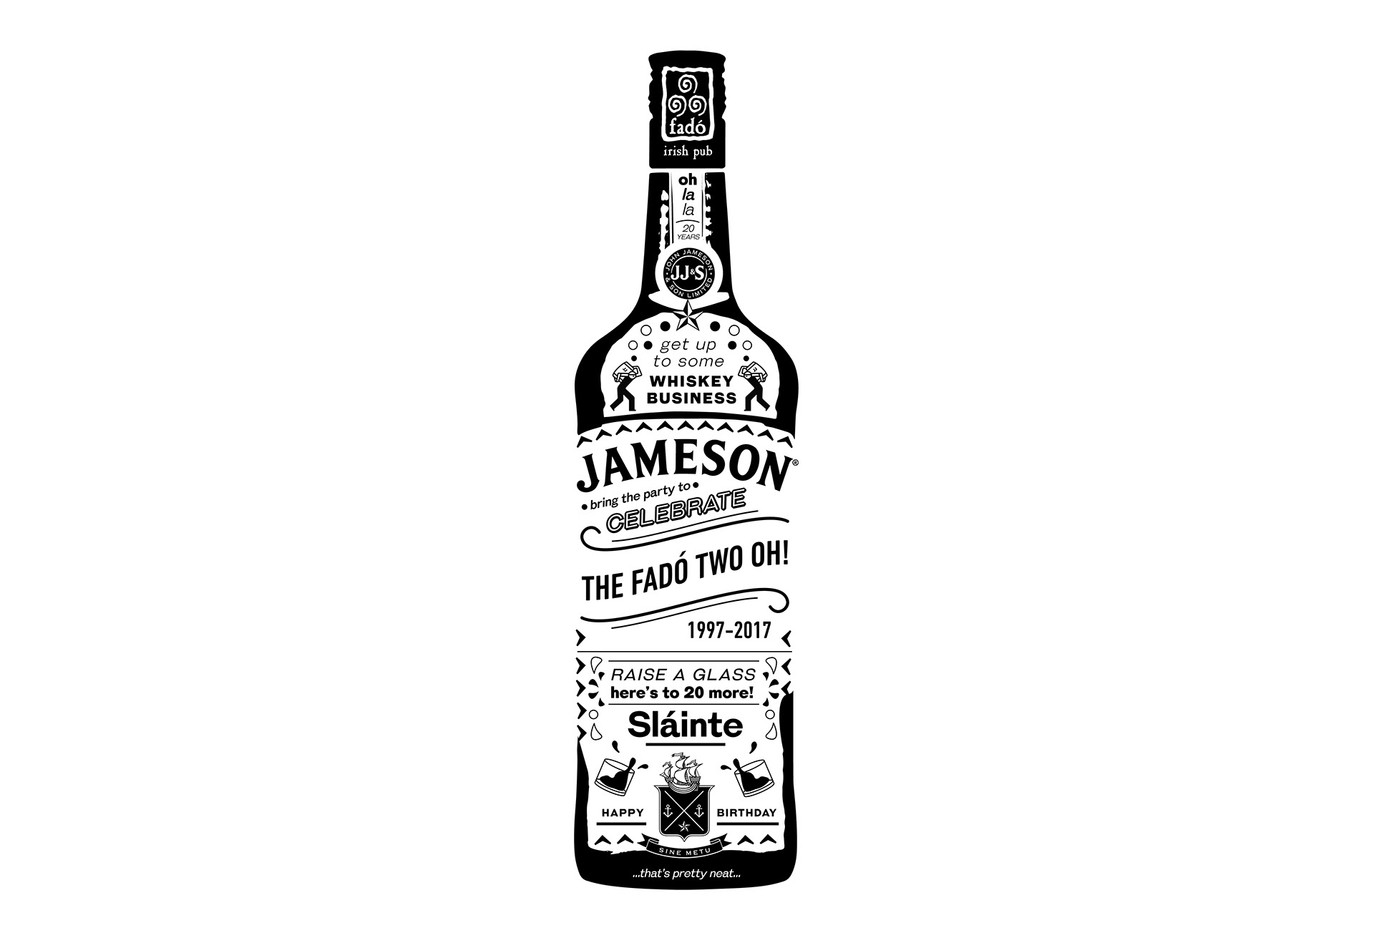 Jameson Typographic Illustration